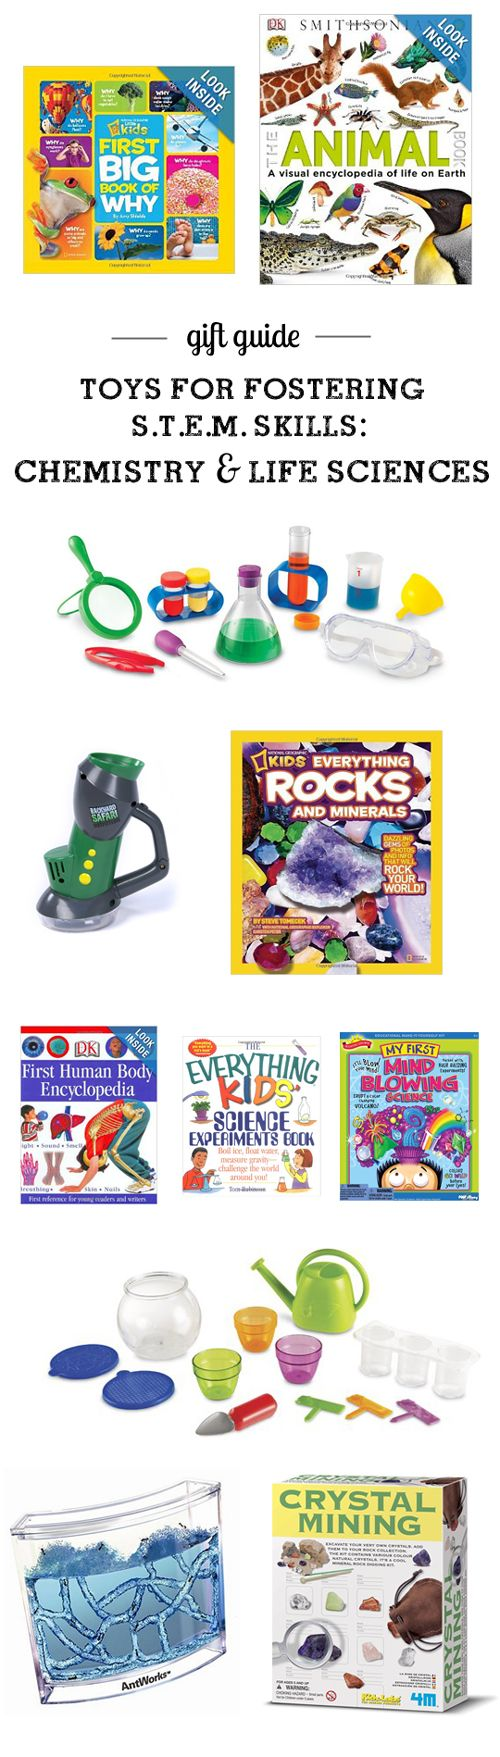 MPMK Toy Gift guide: Top S.T.E.M.  toys (Science, Technology, Engineering, & Math)  for all ages - so many cool picks I'd never thought of and I love, LOVE the detailed descriptions and age recommendations. Such an amazing resource!